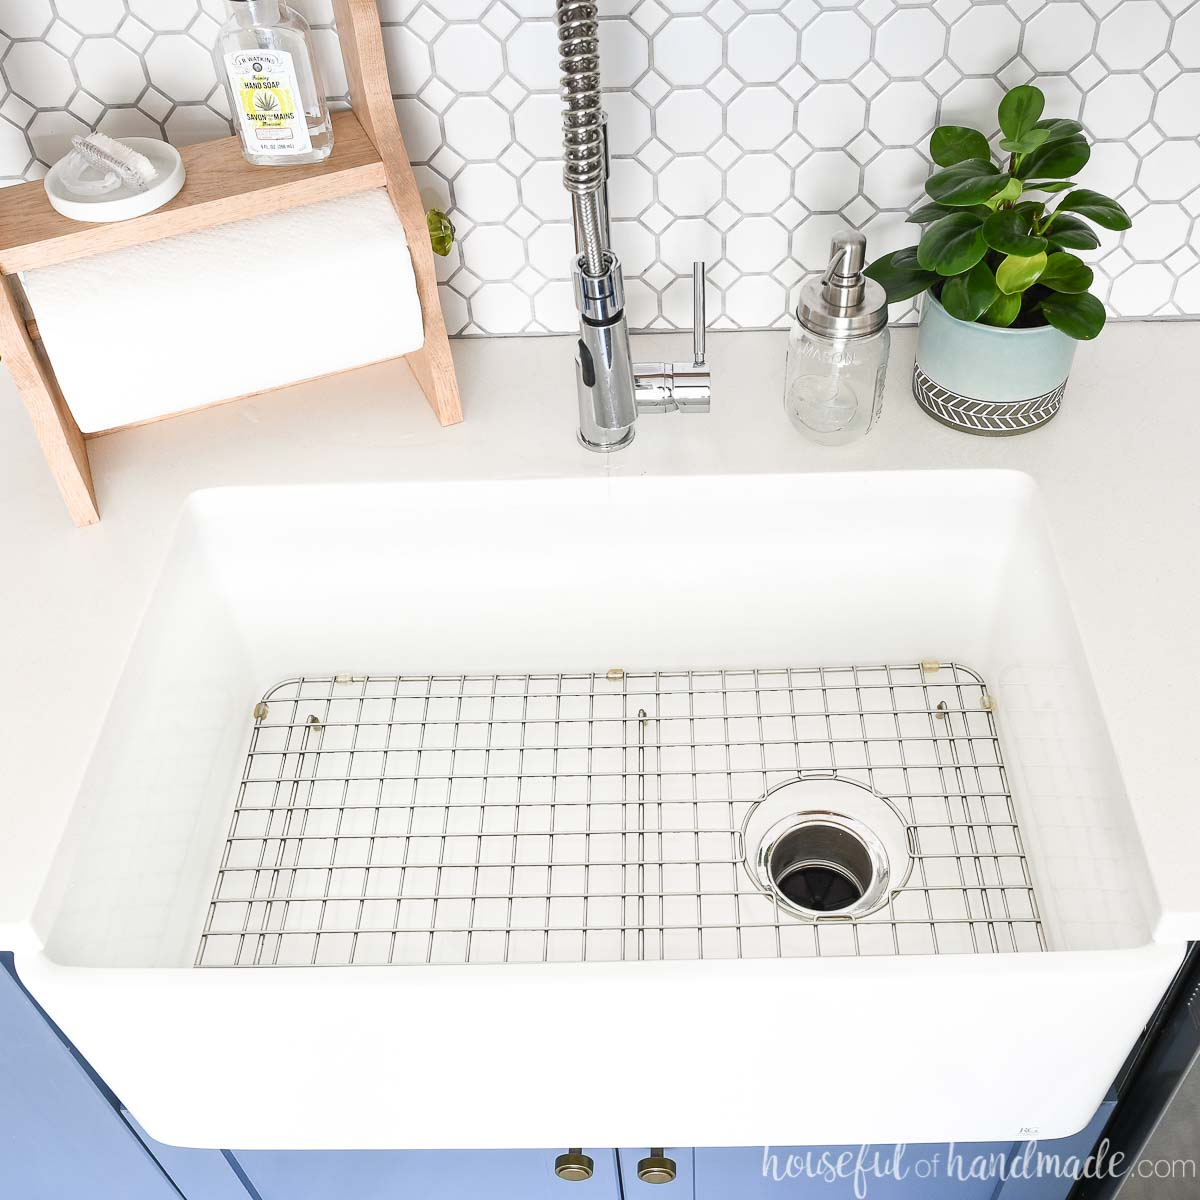 White farmhouse sink installed in a blue base cabinet with a metal grate in the bottom.